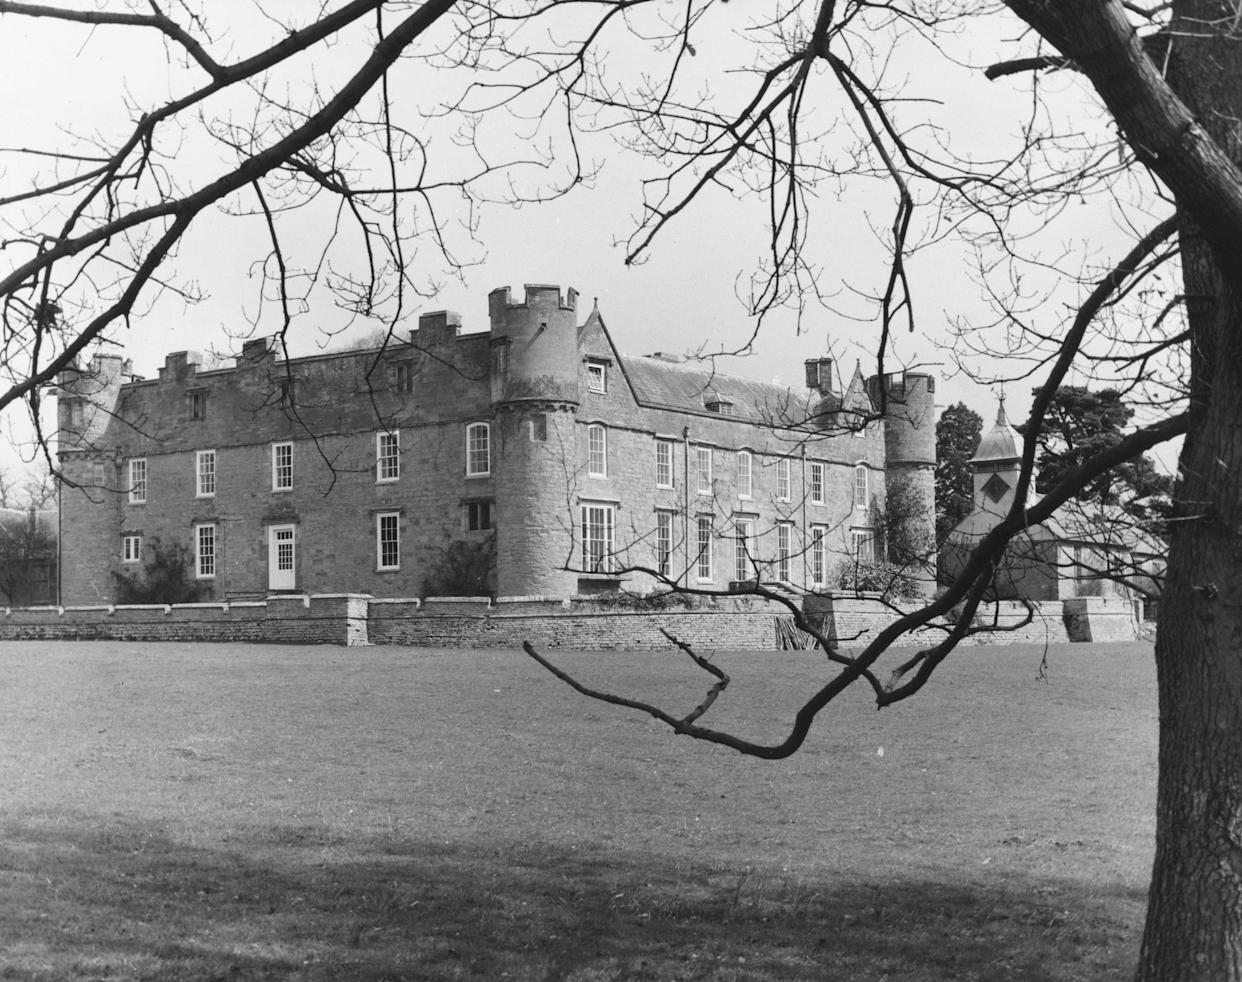 20th April 1960:  Croft Castle in Leominster, Herefordshire after being opened to the public by its owner, Lord Croft. The castle dates back to the 15th Century and has some 18th Century rooms.  (Photo by Fox Photos/Getty Images)